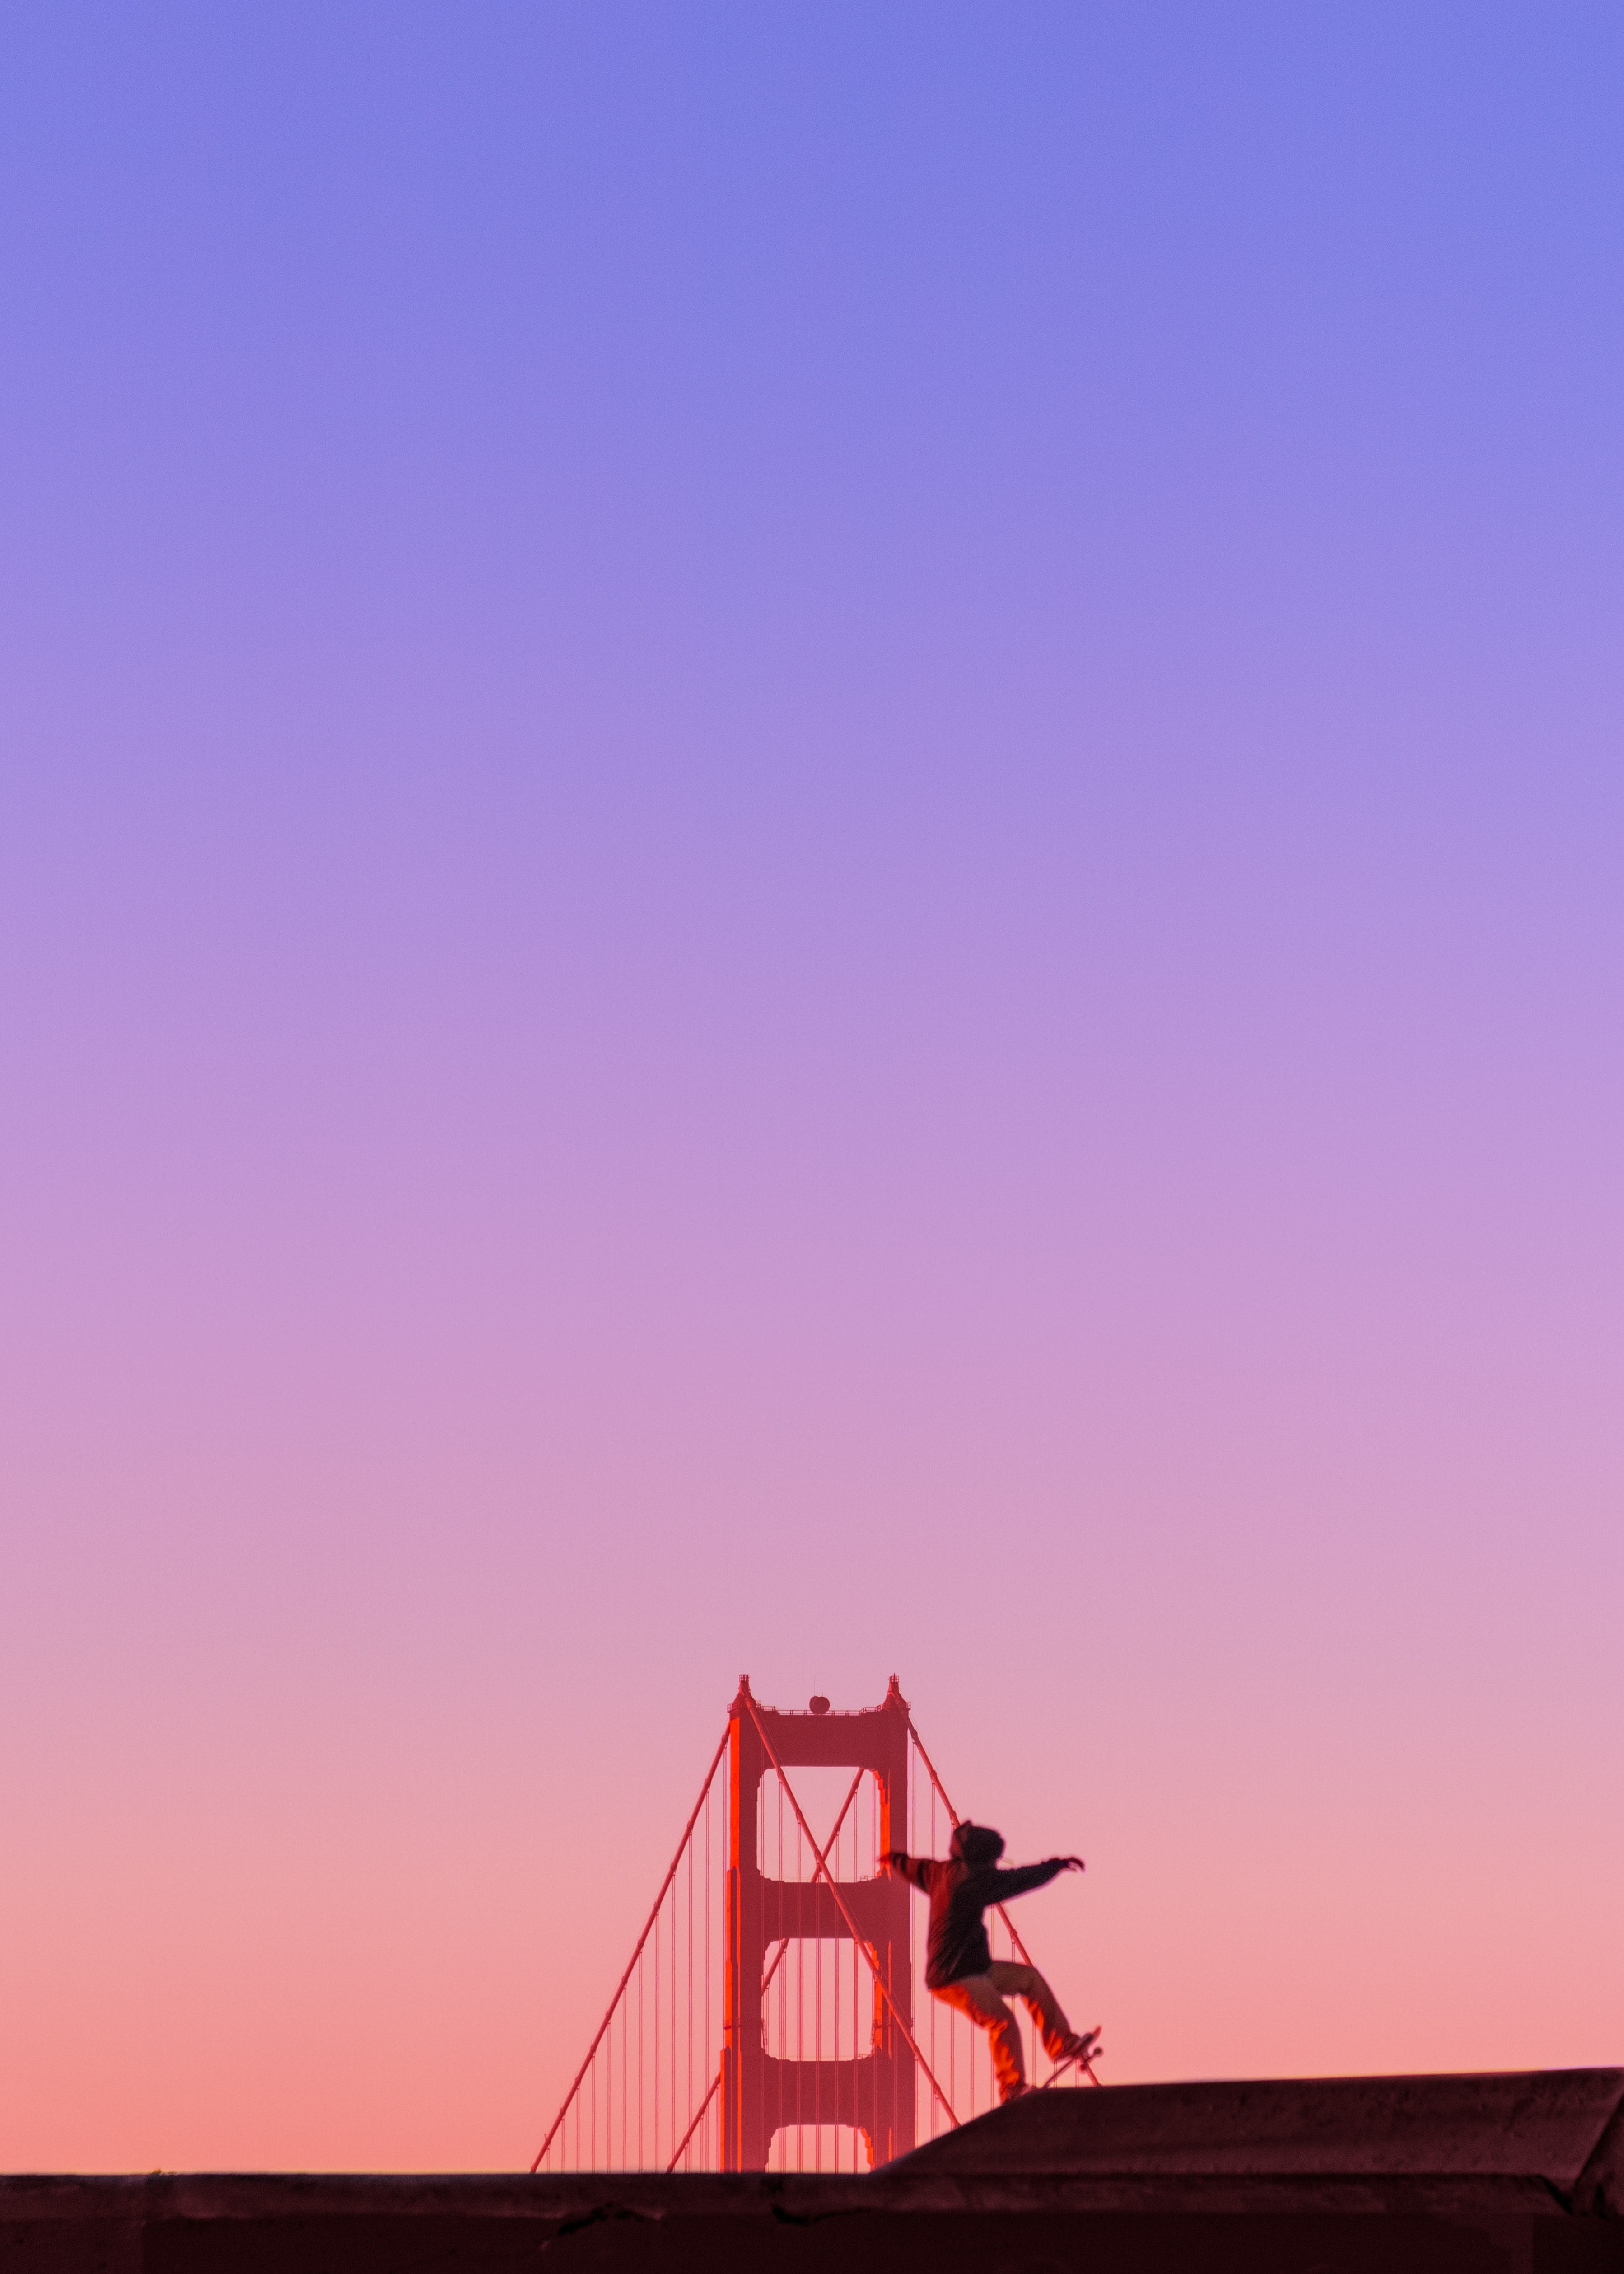 man riding on skateboard front of Golden Gate Bridge